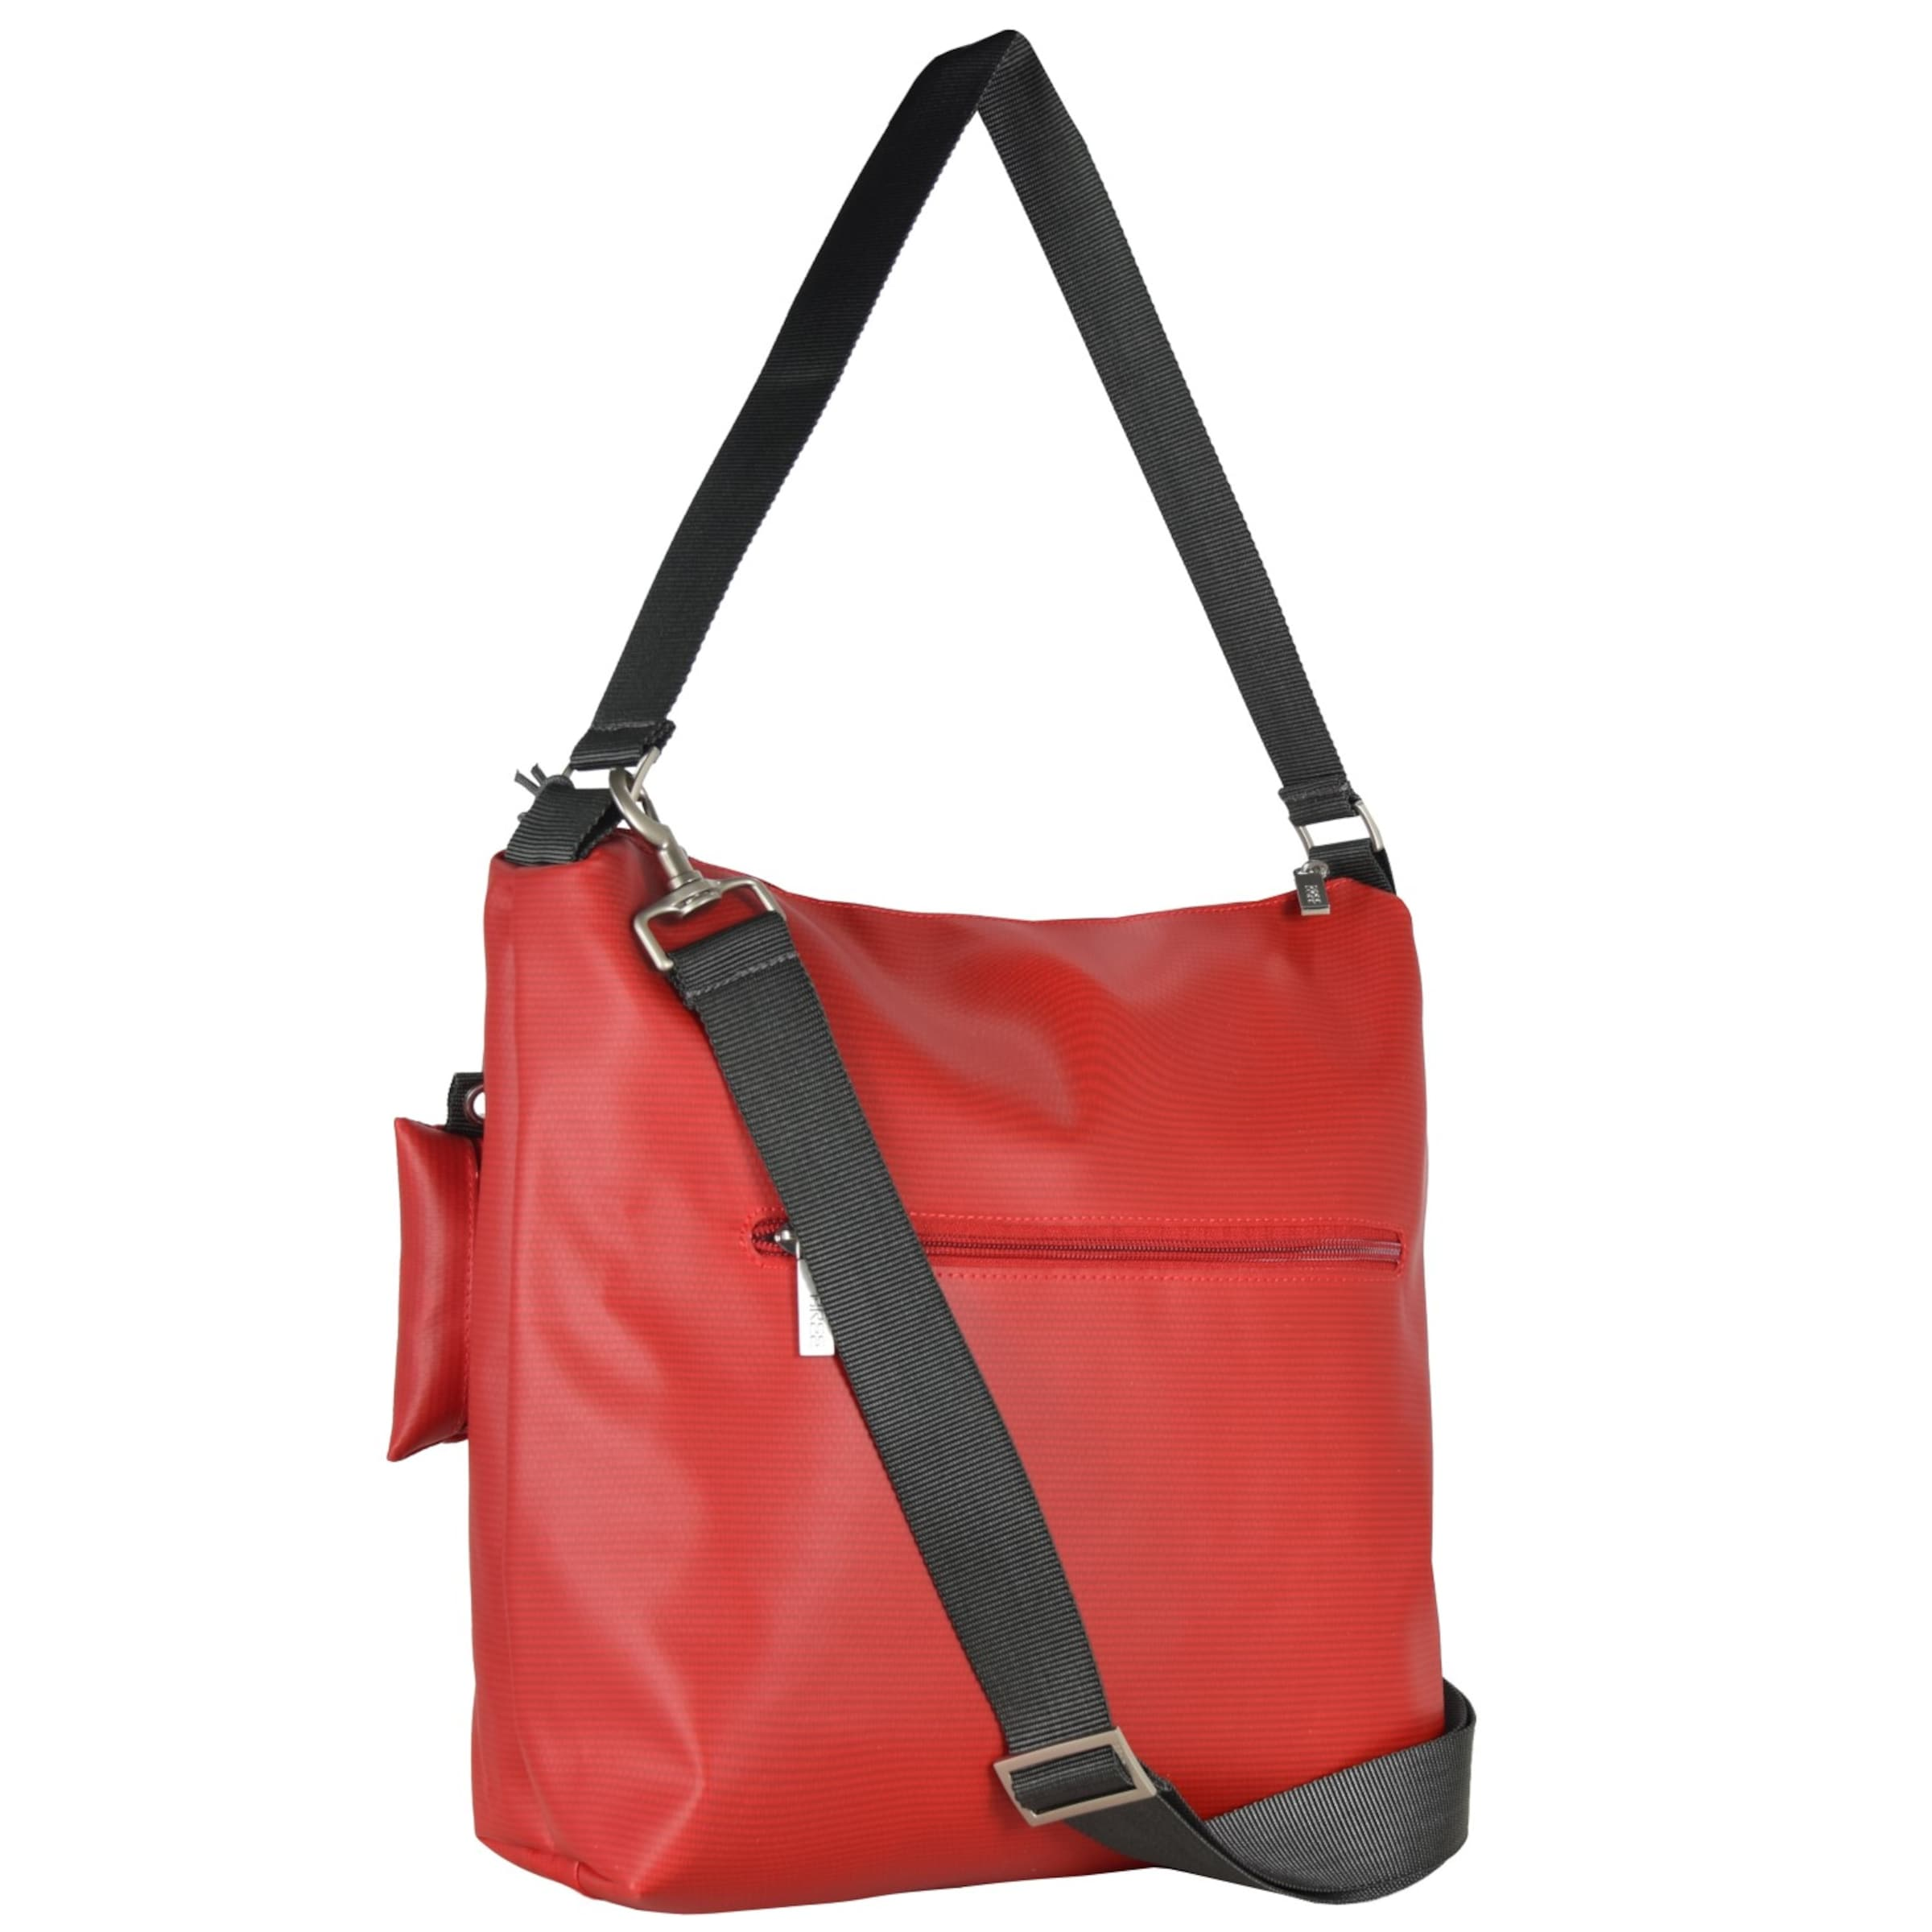 Punch Cm 702 Schultertasche 34 Bree Rot In EW2ID9H